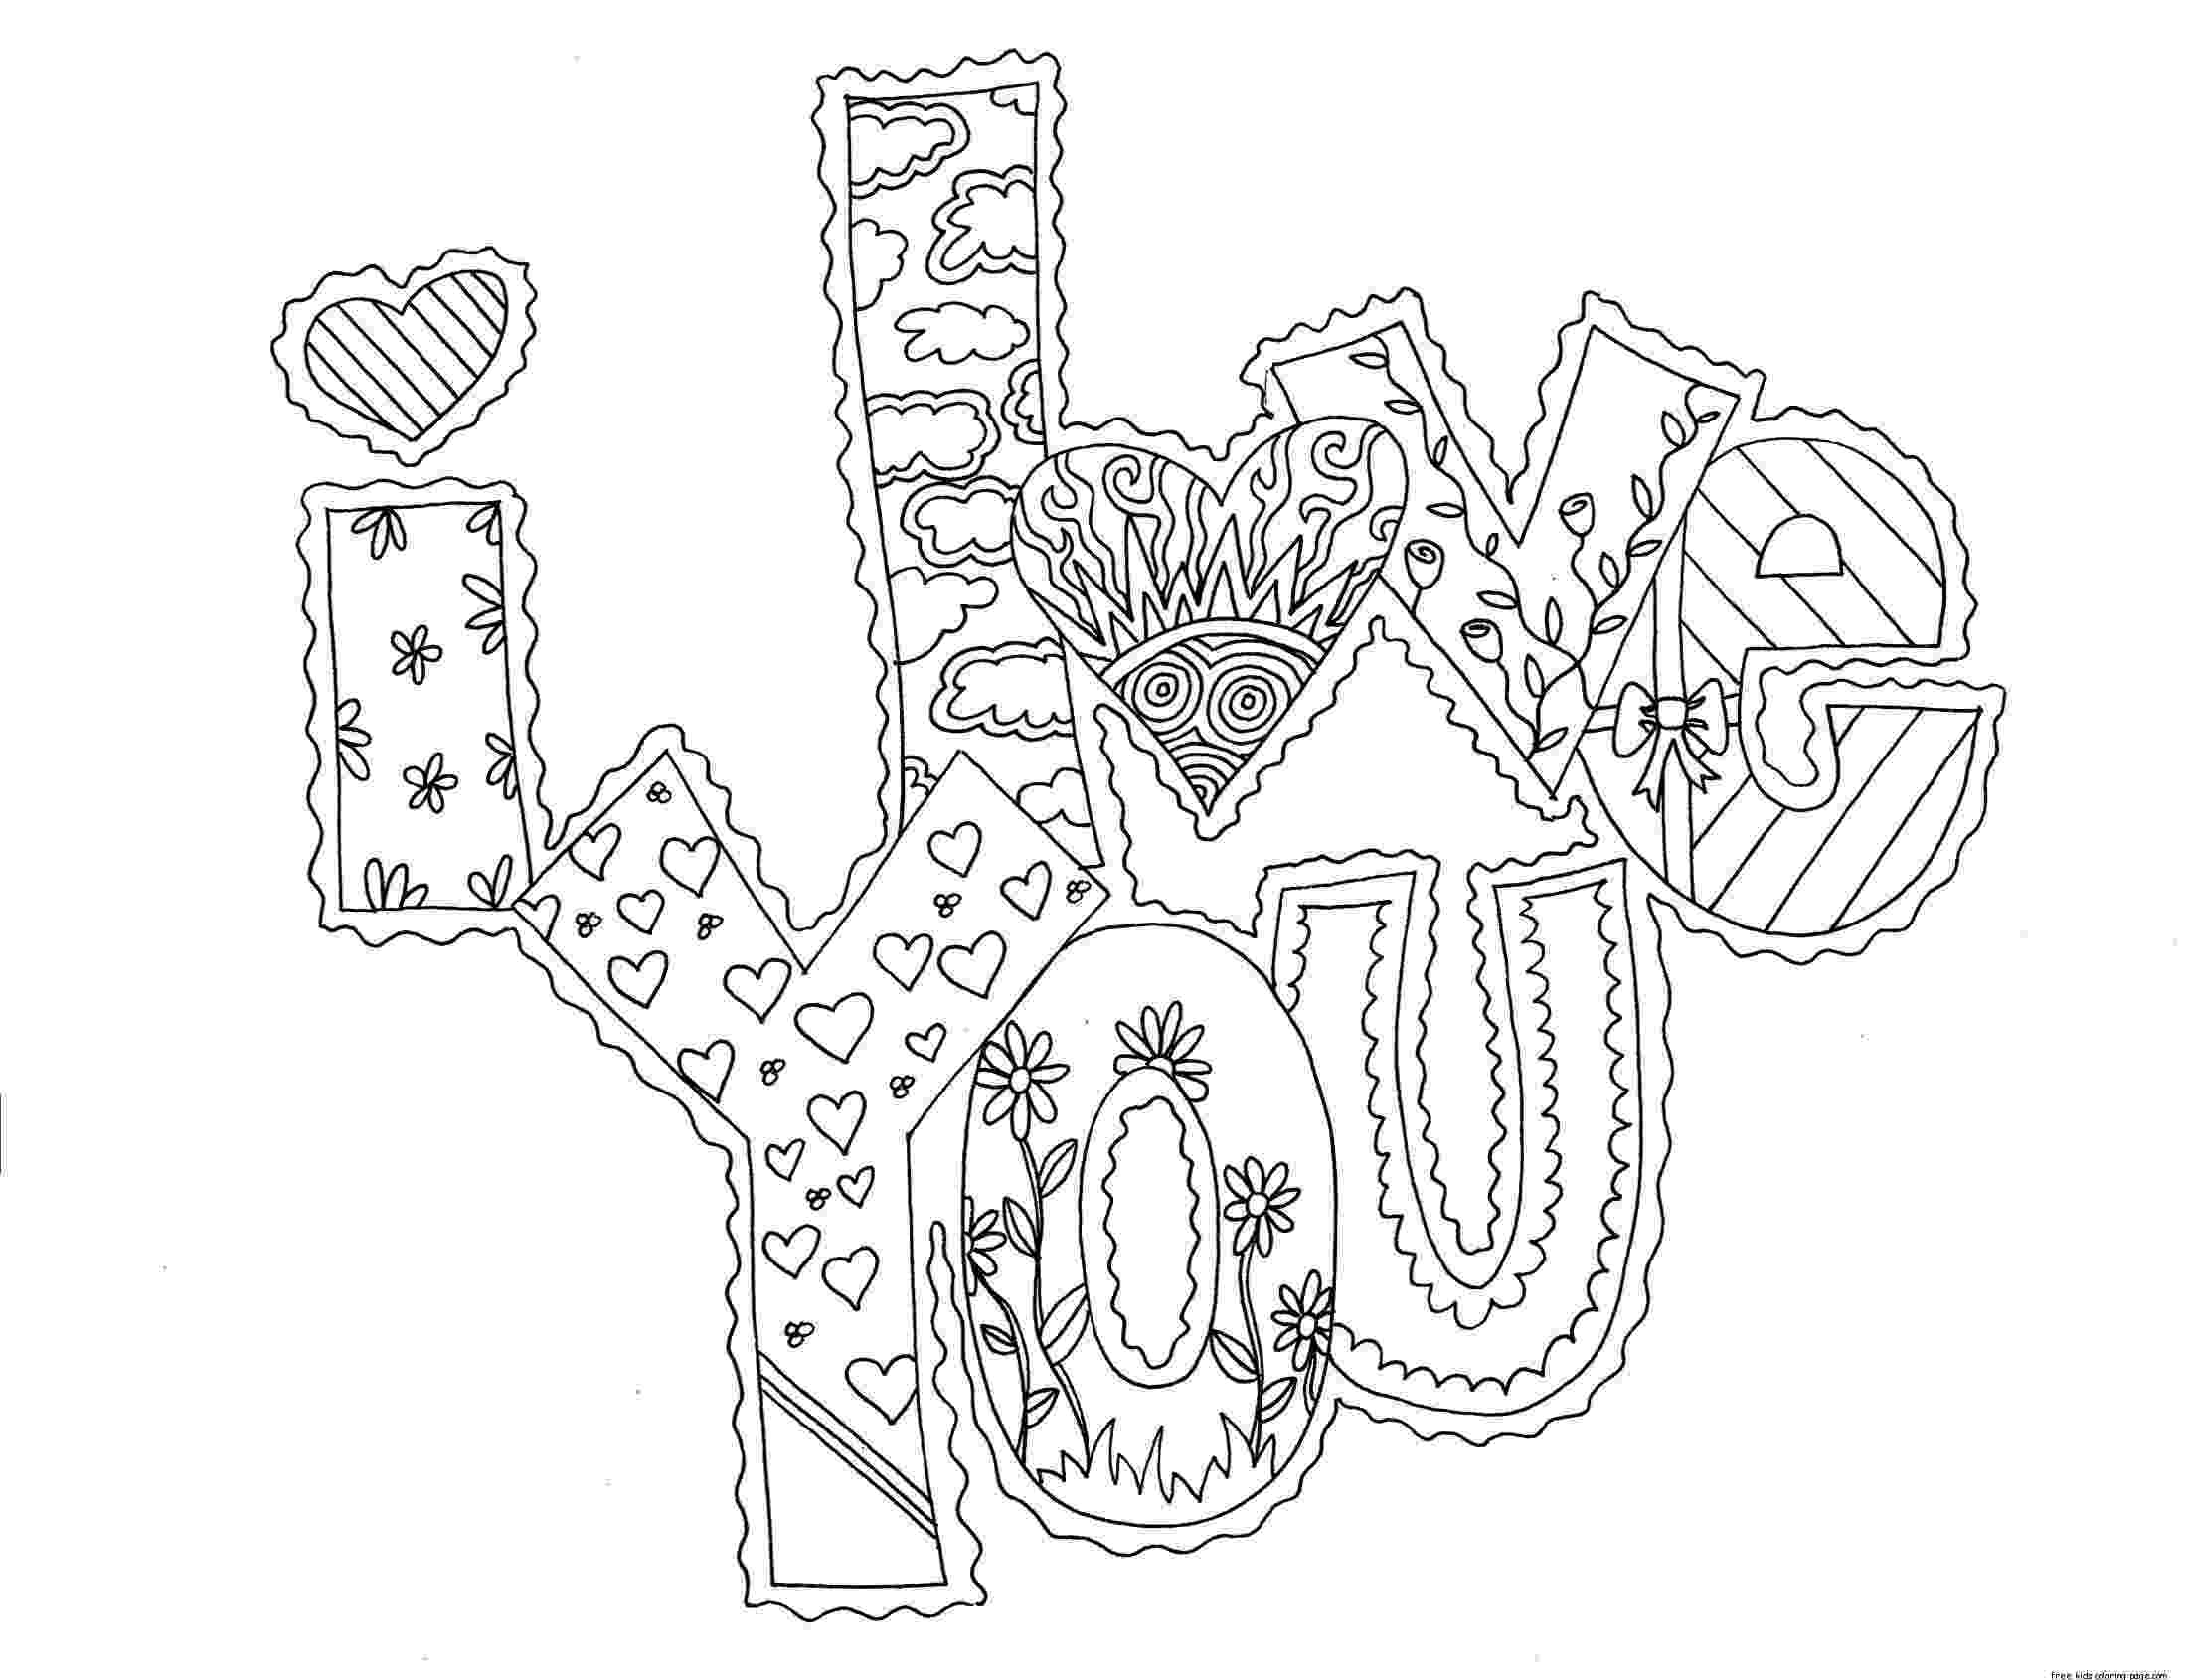 i love you coloring pages printable quoti love you quot coloring pages you printable love coloring pages i